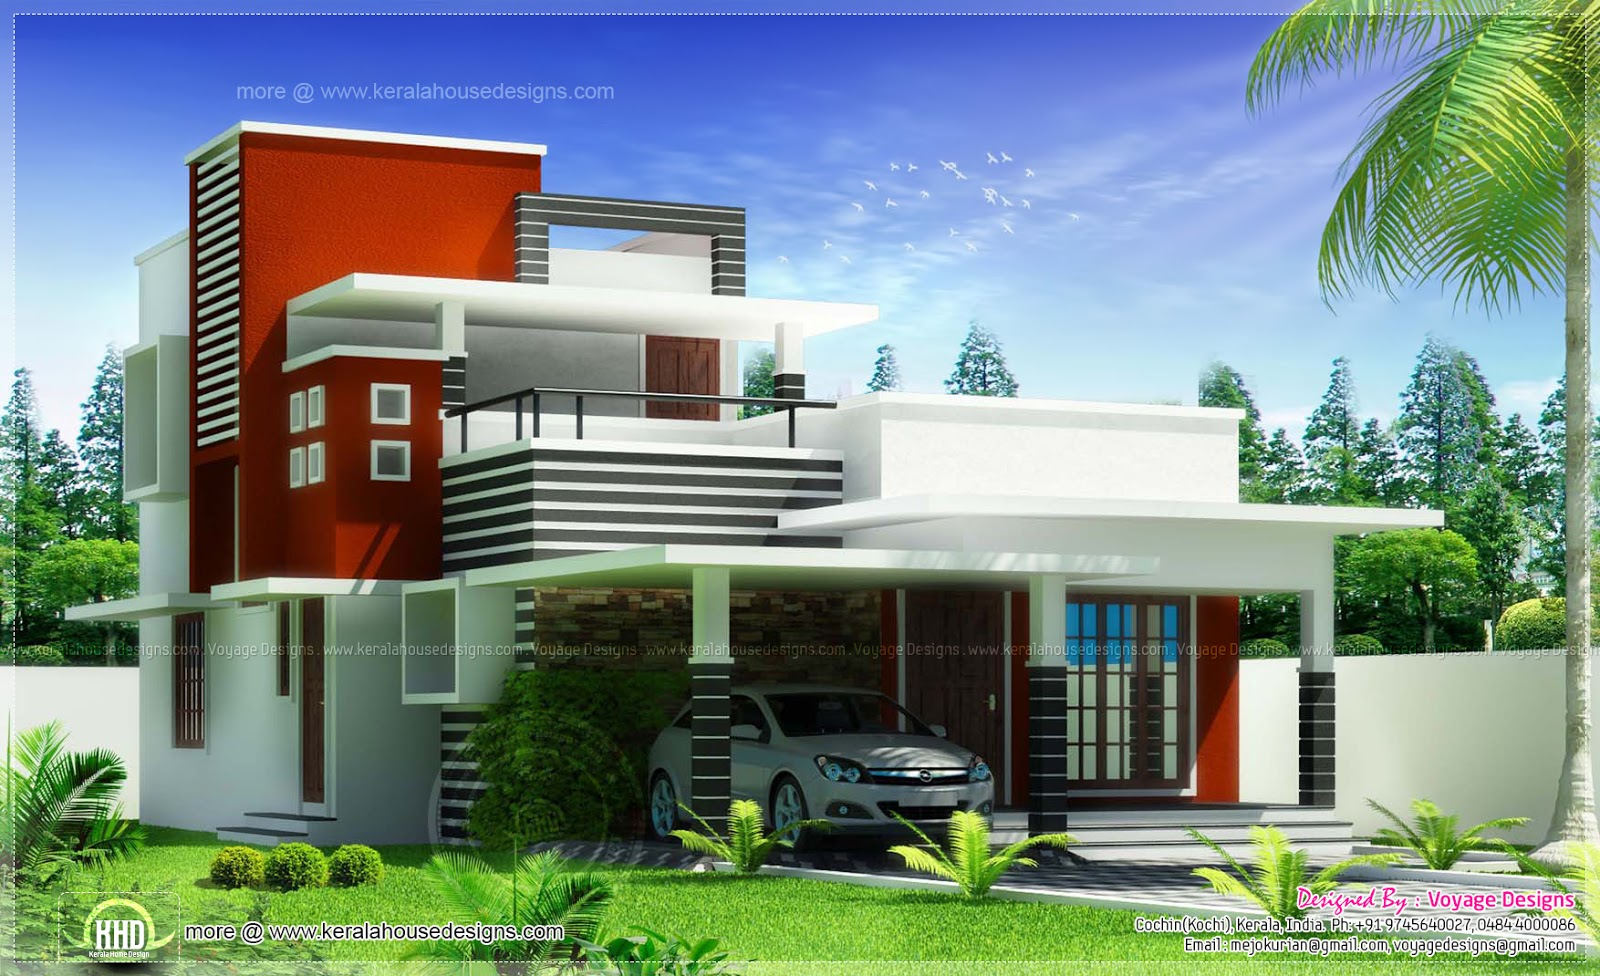 3 bed room contemporary style house home kerala plans for Modern kerala style house plans with photos